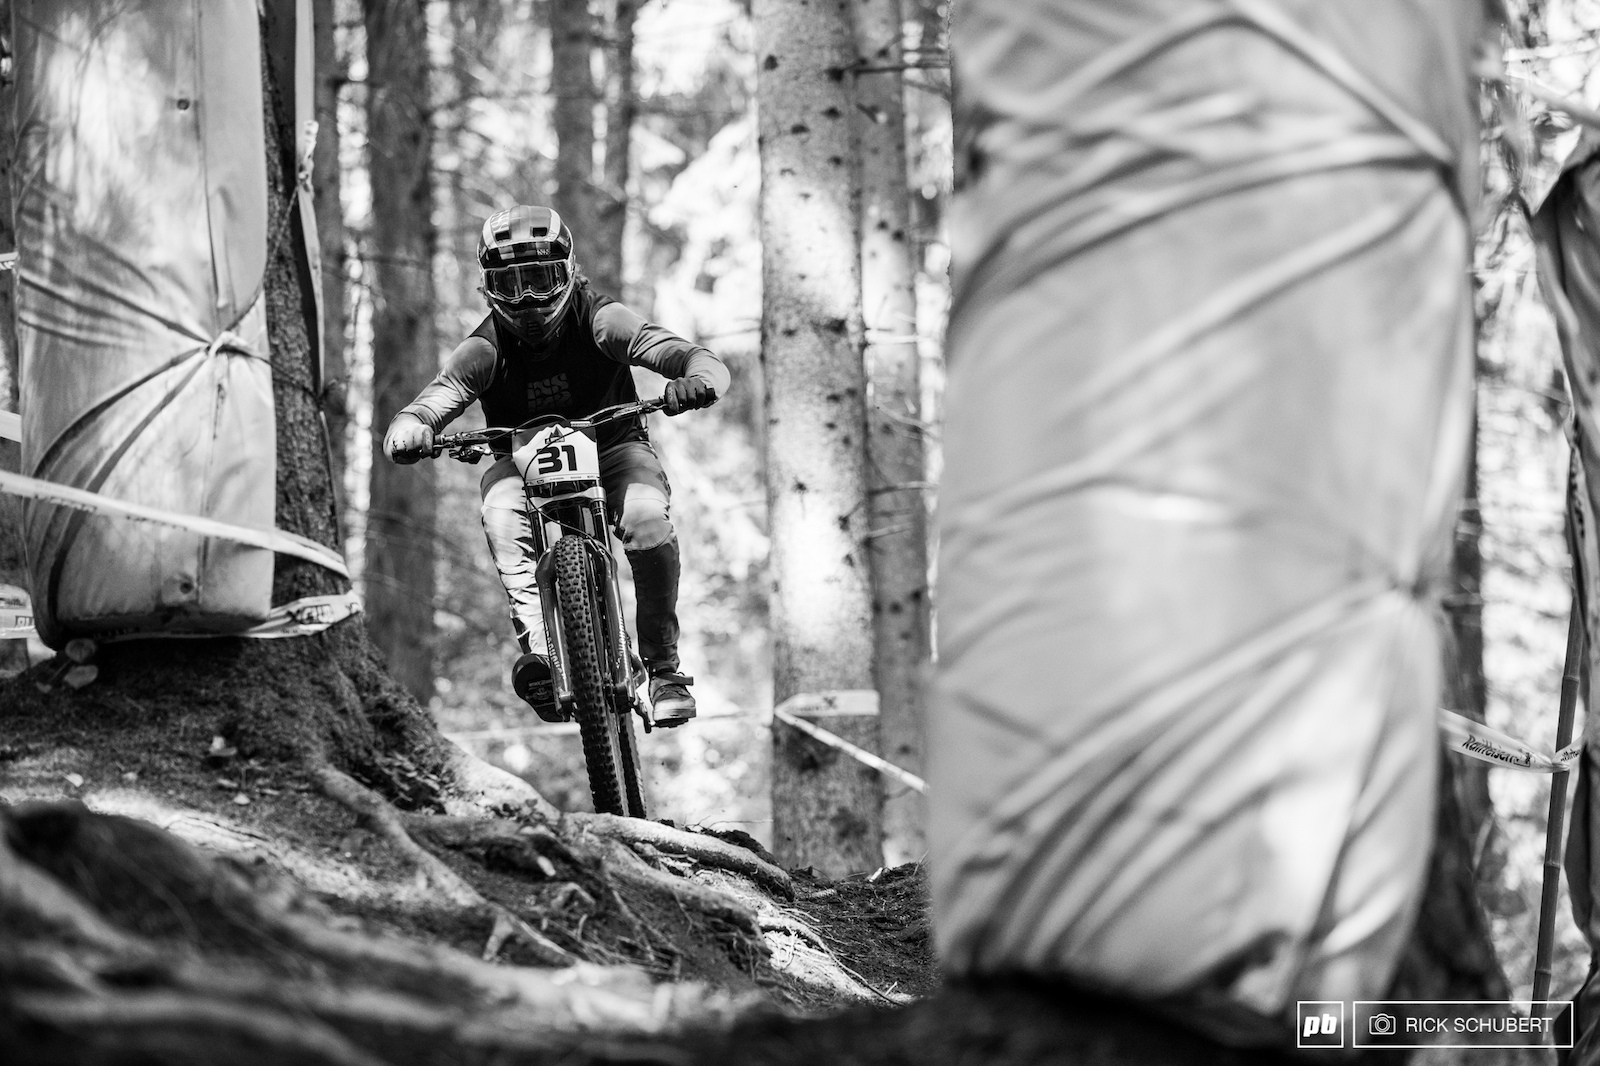 Adrian Loron is pure talent on the bike. Just 9 seconds seperated him to the top field of world cup racers.